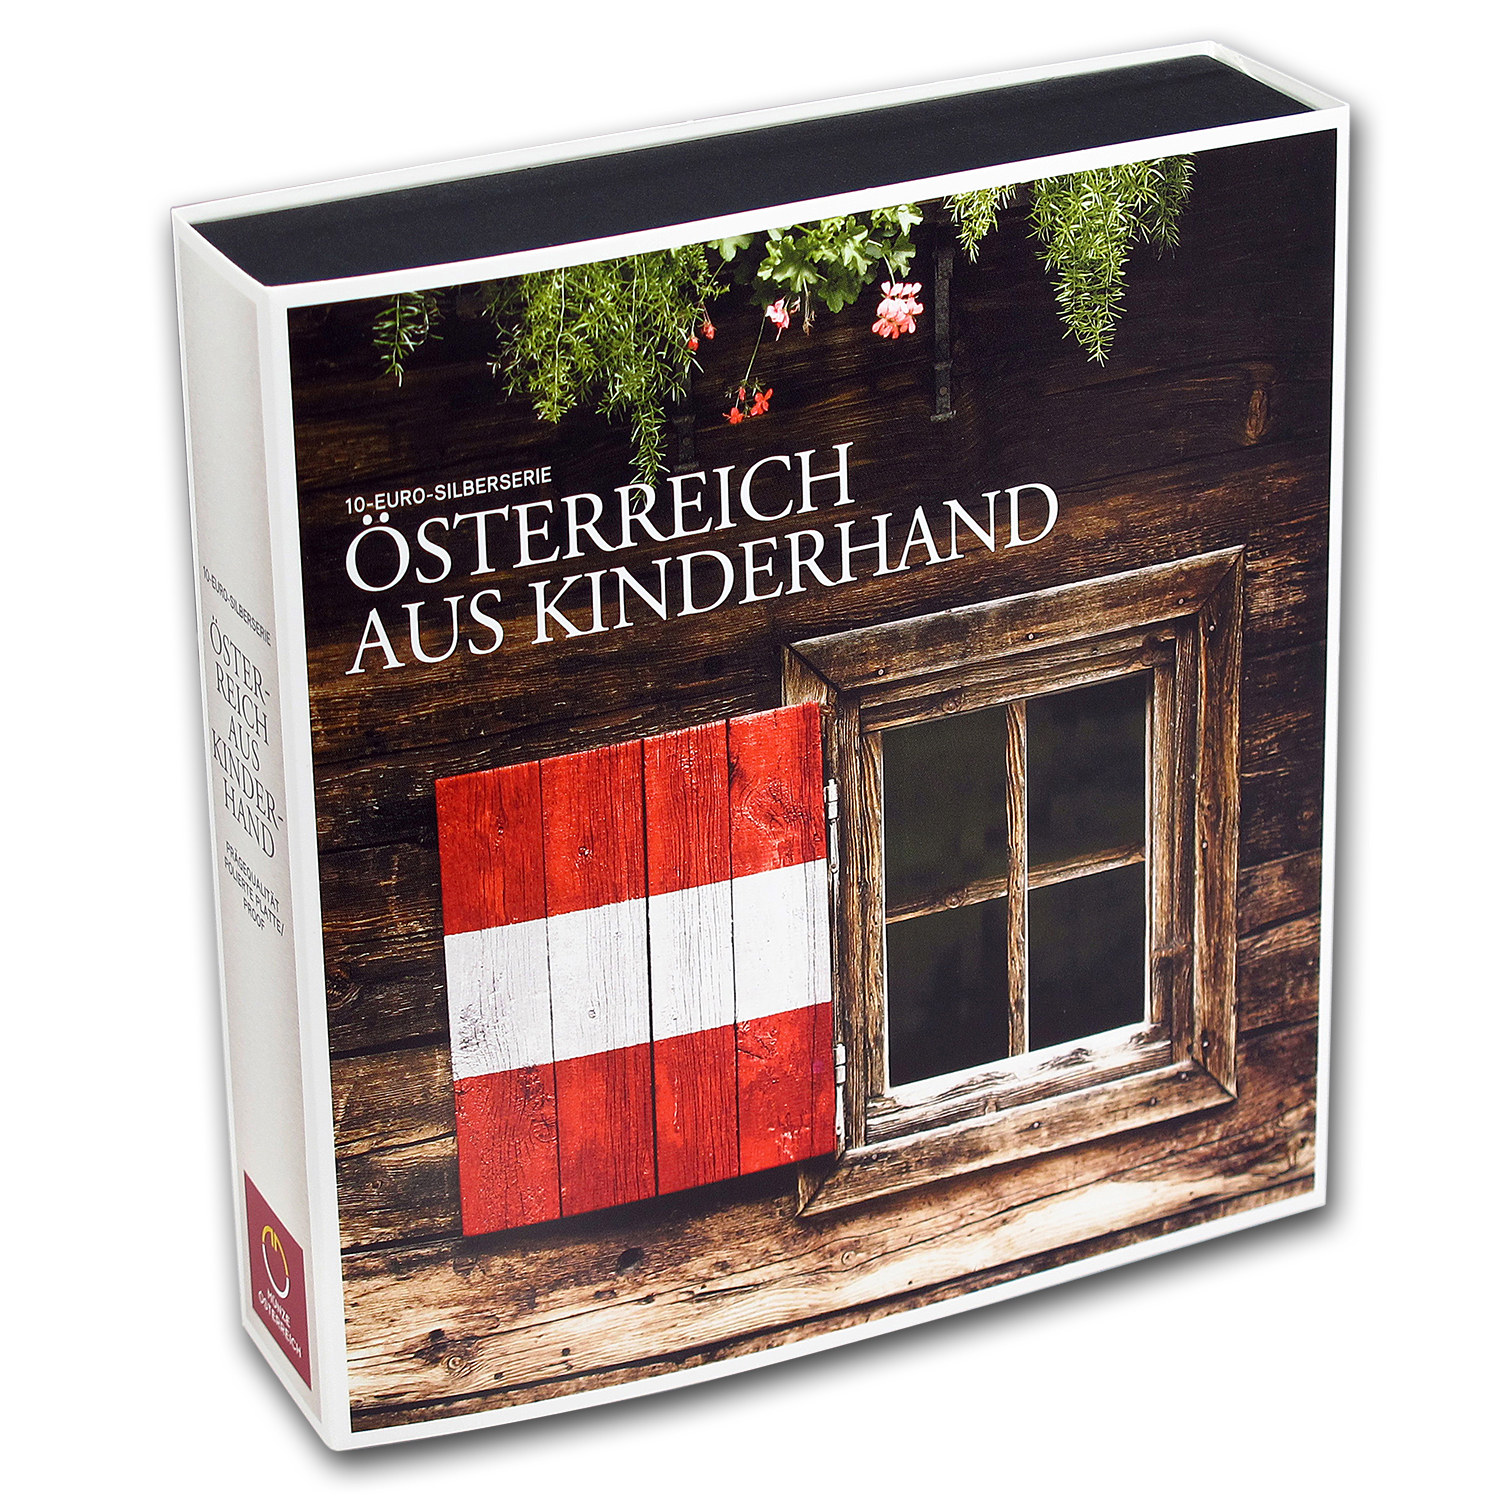 OEM Box - 2012-2016 Austria 9-Coin Silver Piece by Piece Set